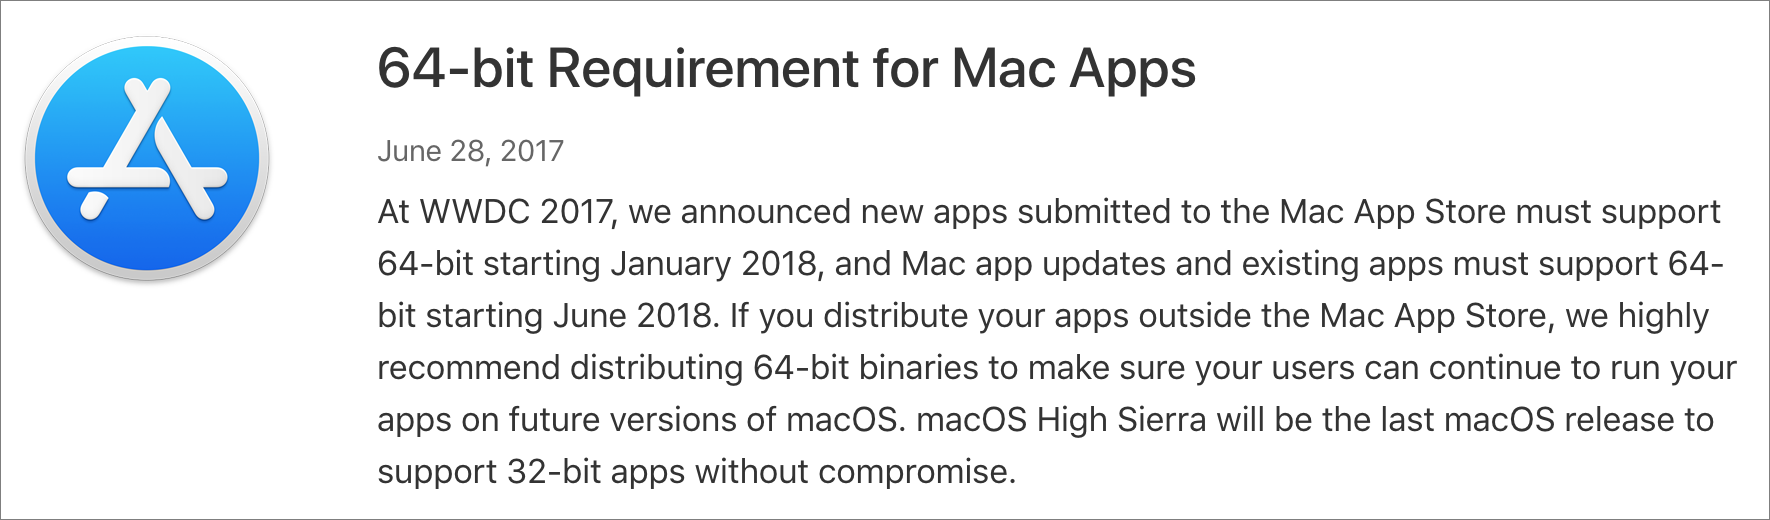 Apple's warning about apps requiring 64-bit support going forward.